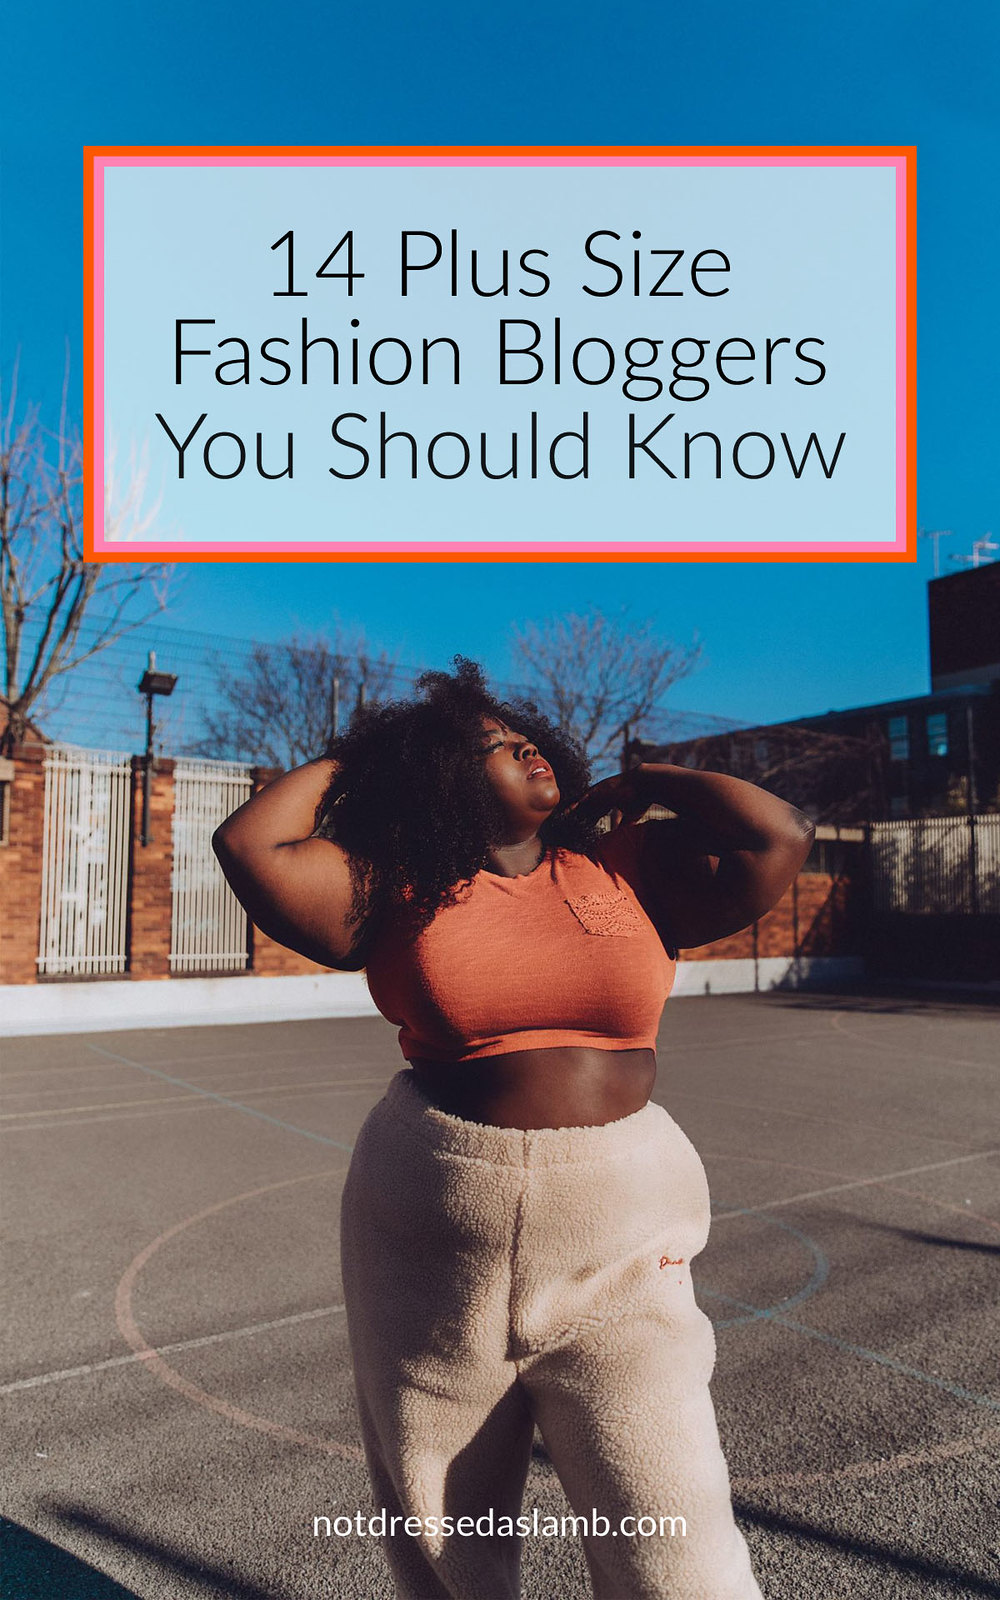 14 Plus Size Fashion Bloggers You Should Know